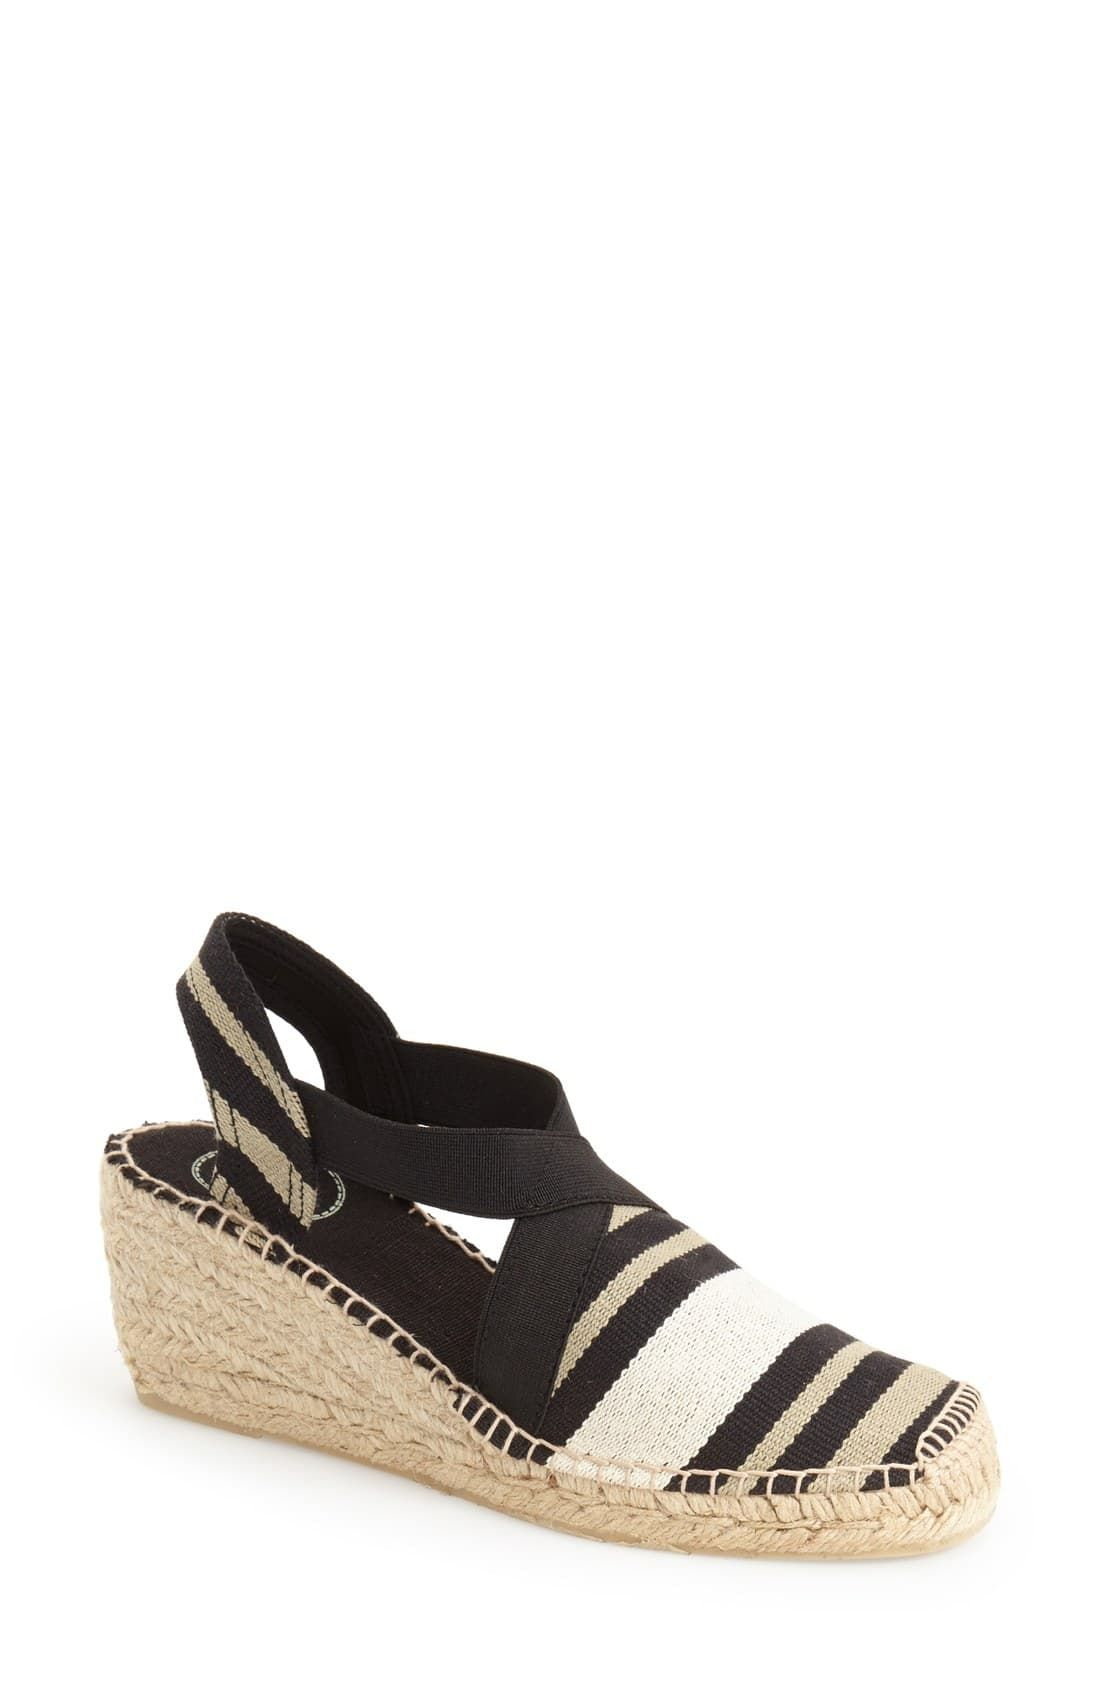 17776d83677 Toni Pons 'Tarbes' Espadrille Wedge Sandal in 2019   Products ...